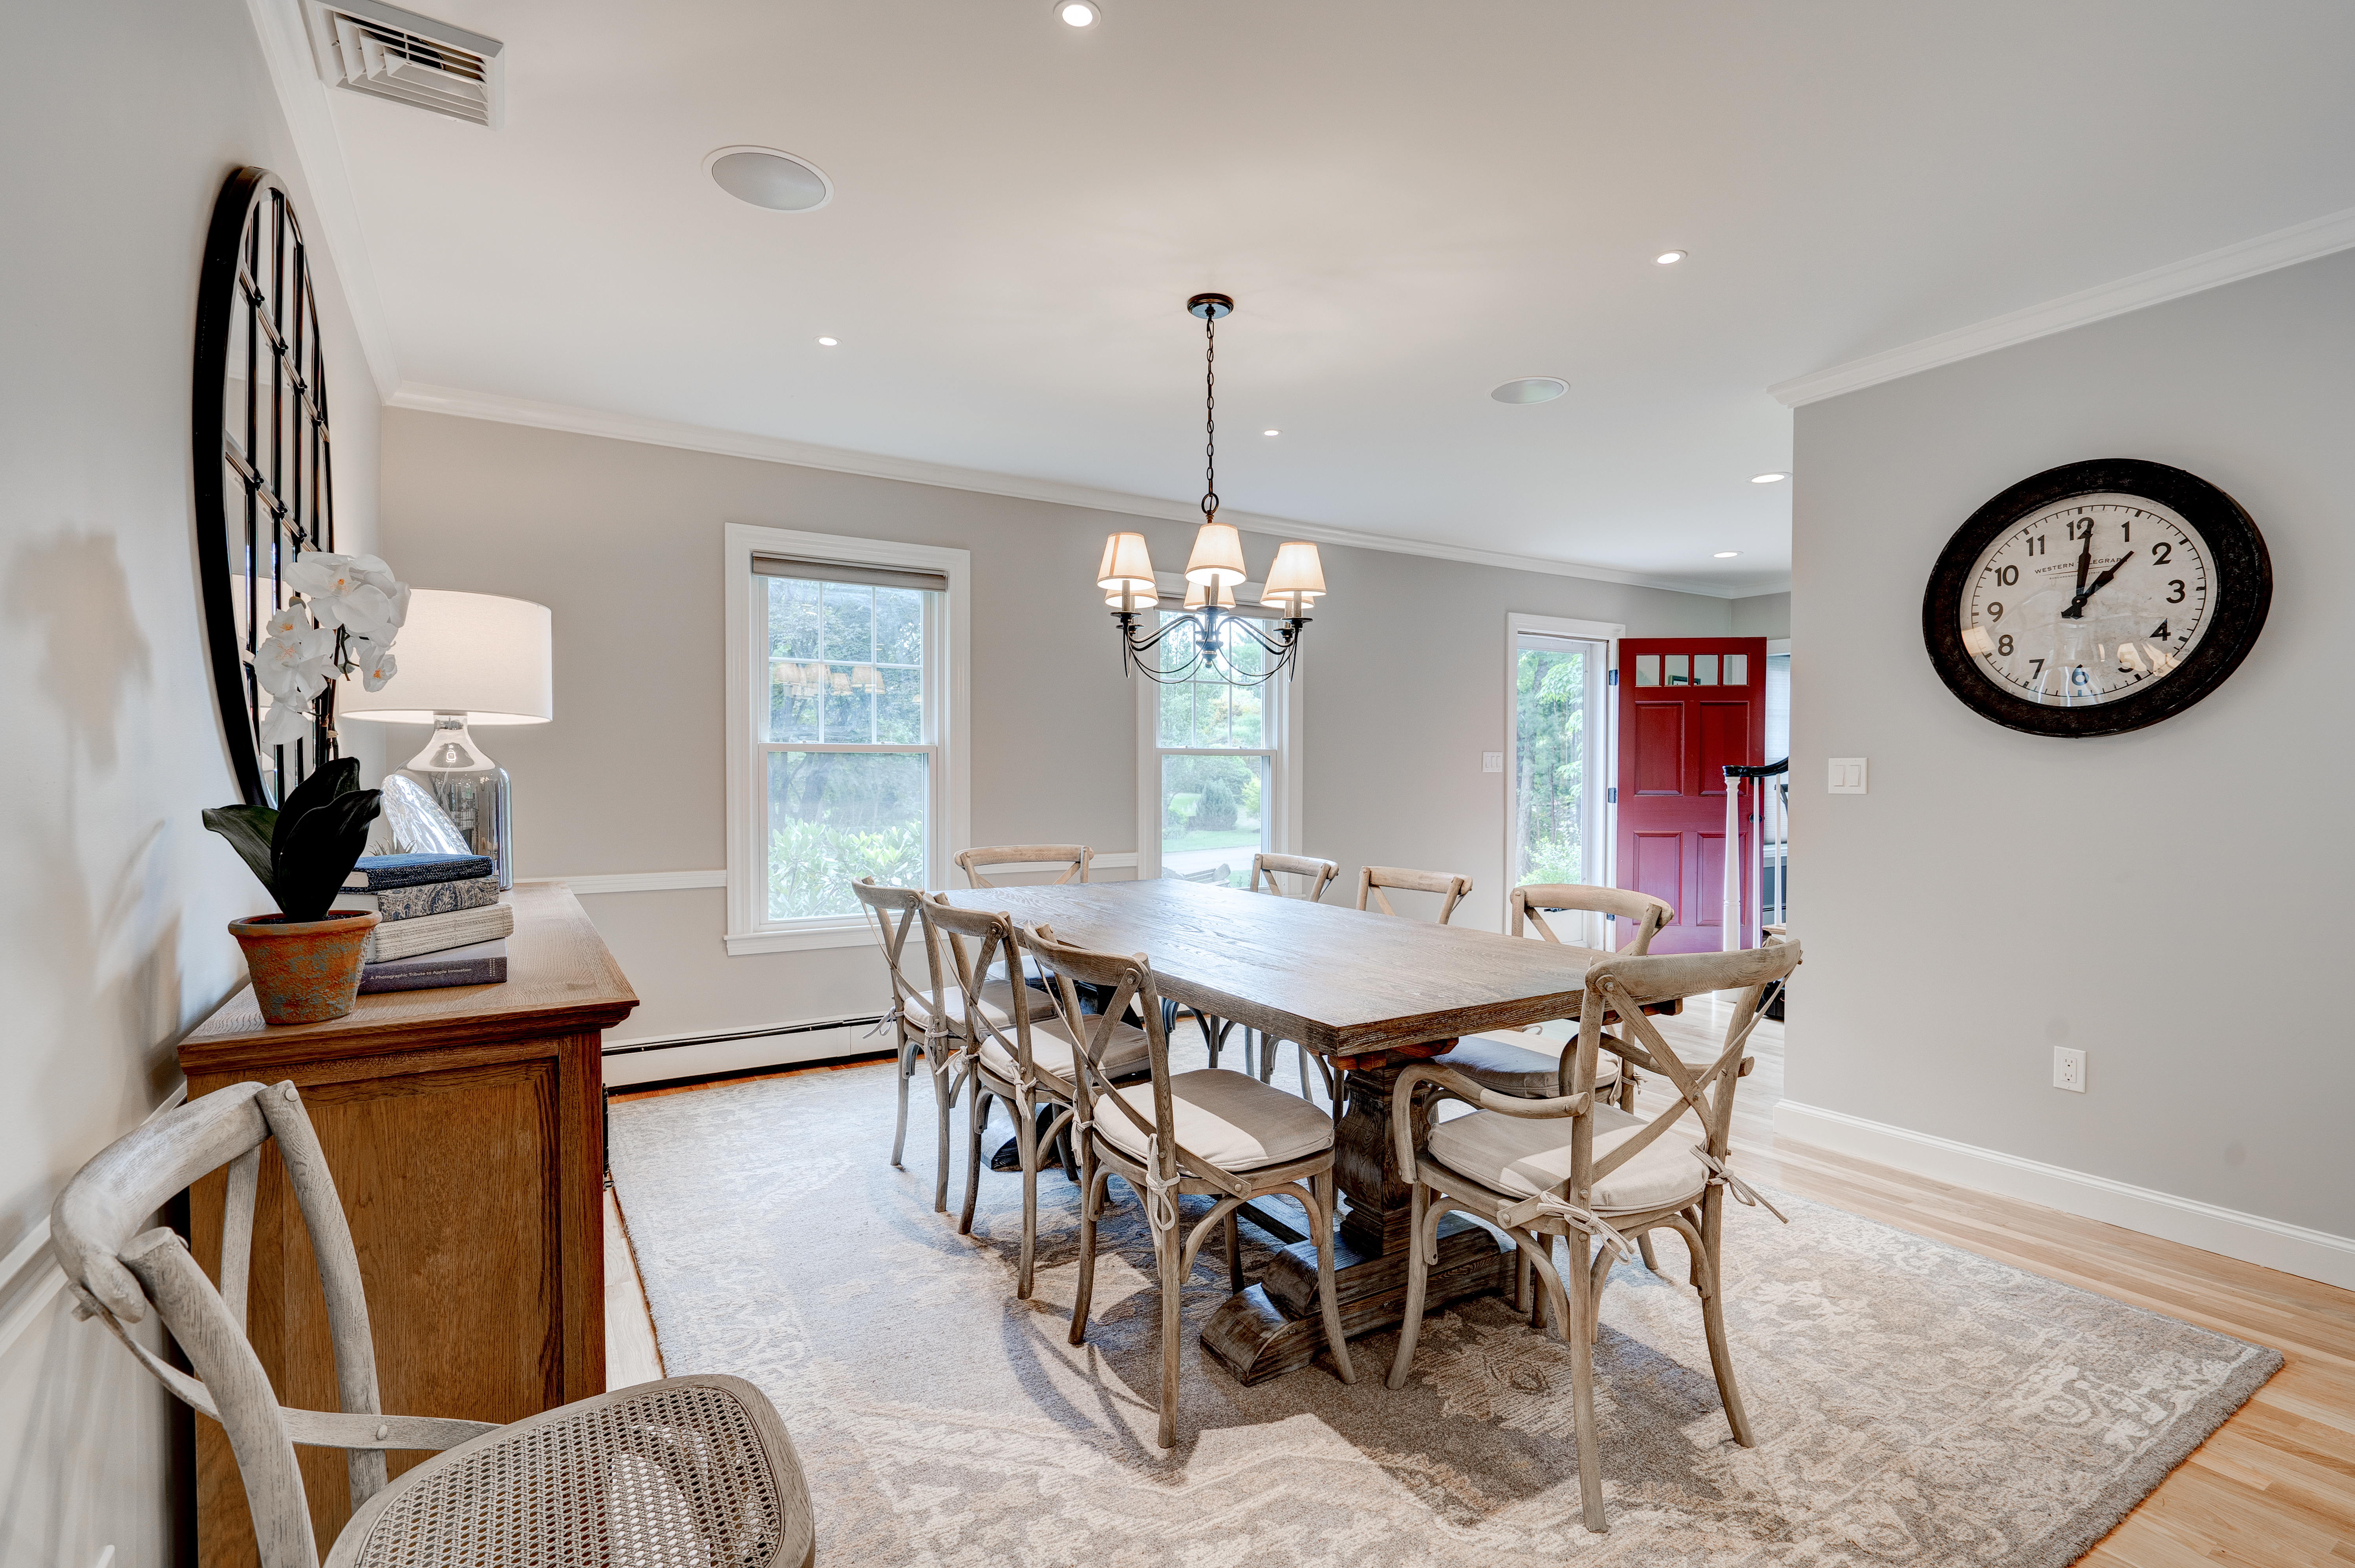 Custom dining area and kitchen real estate photography